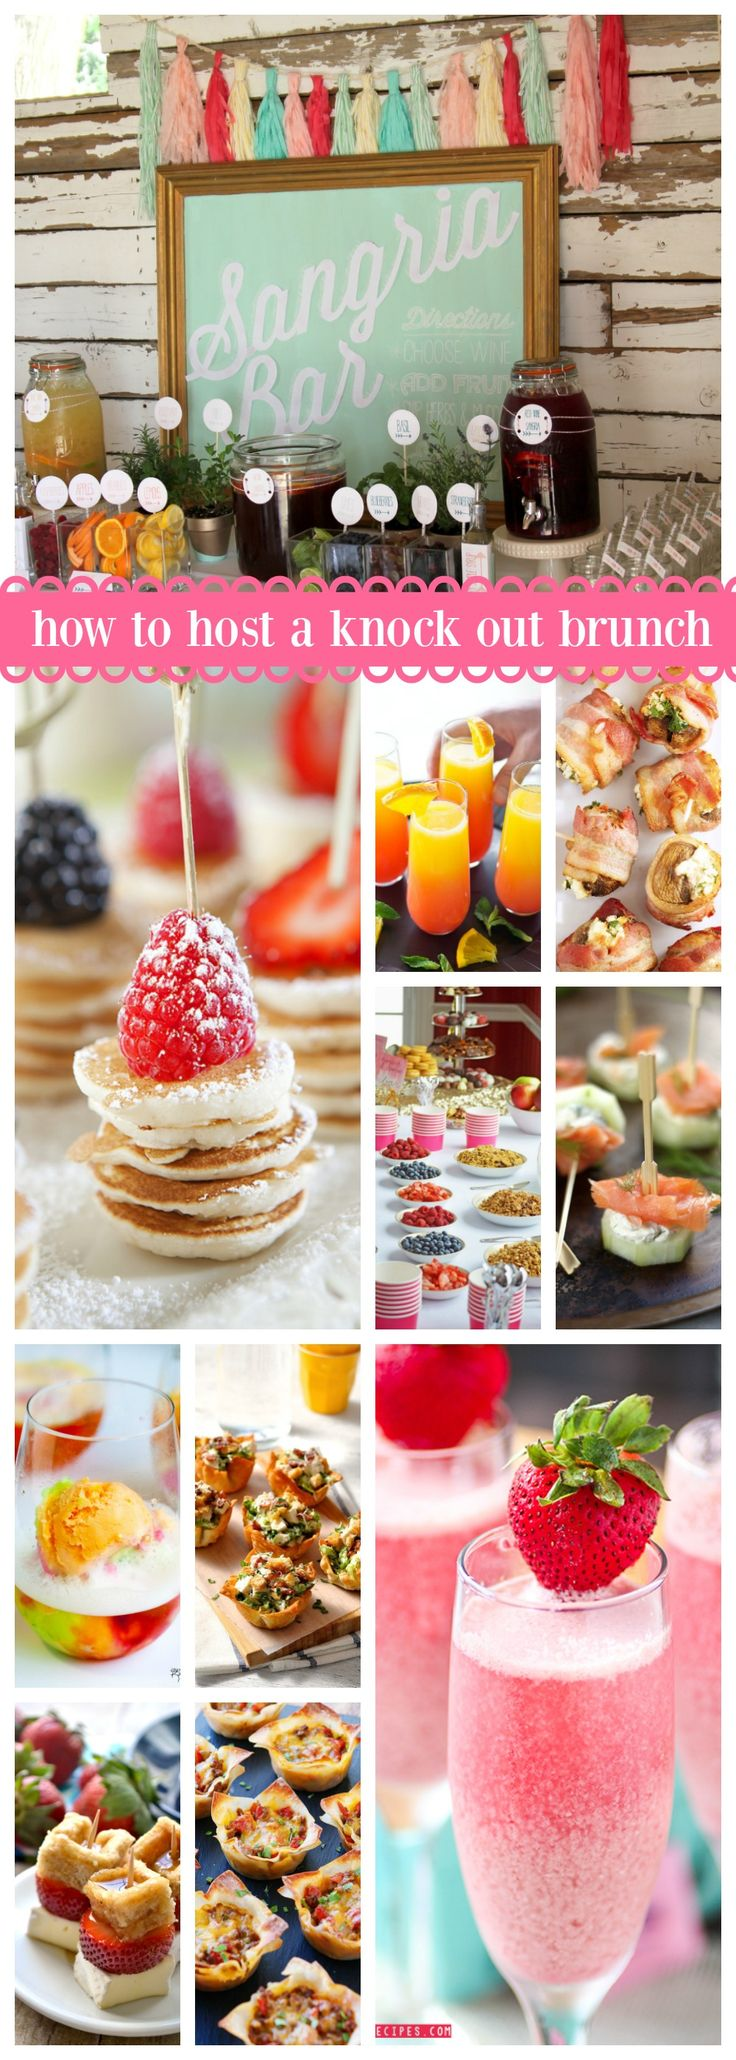 Over 50+ ideas of how to throw a knock out brunch!